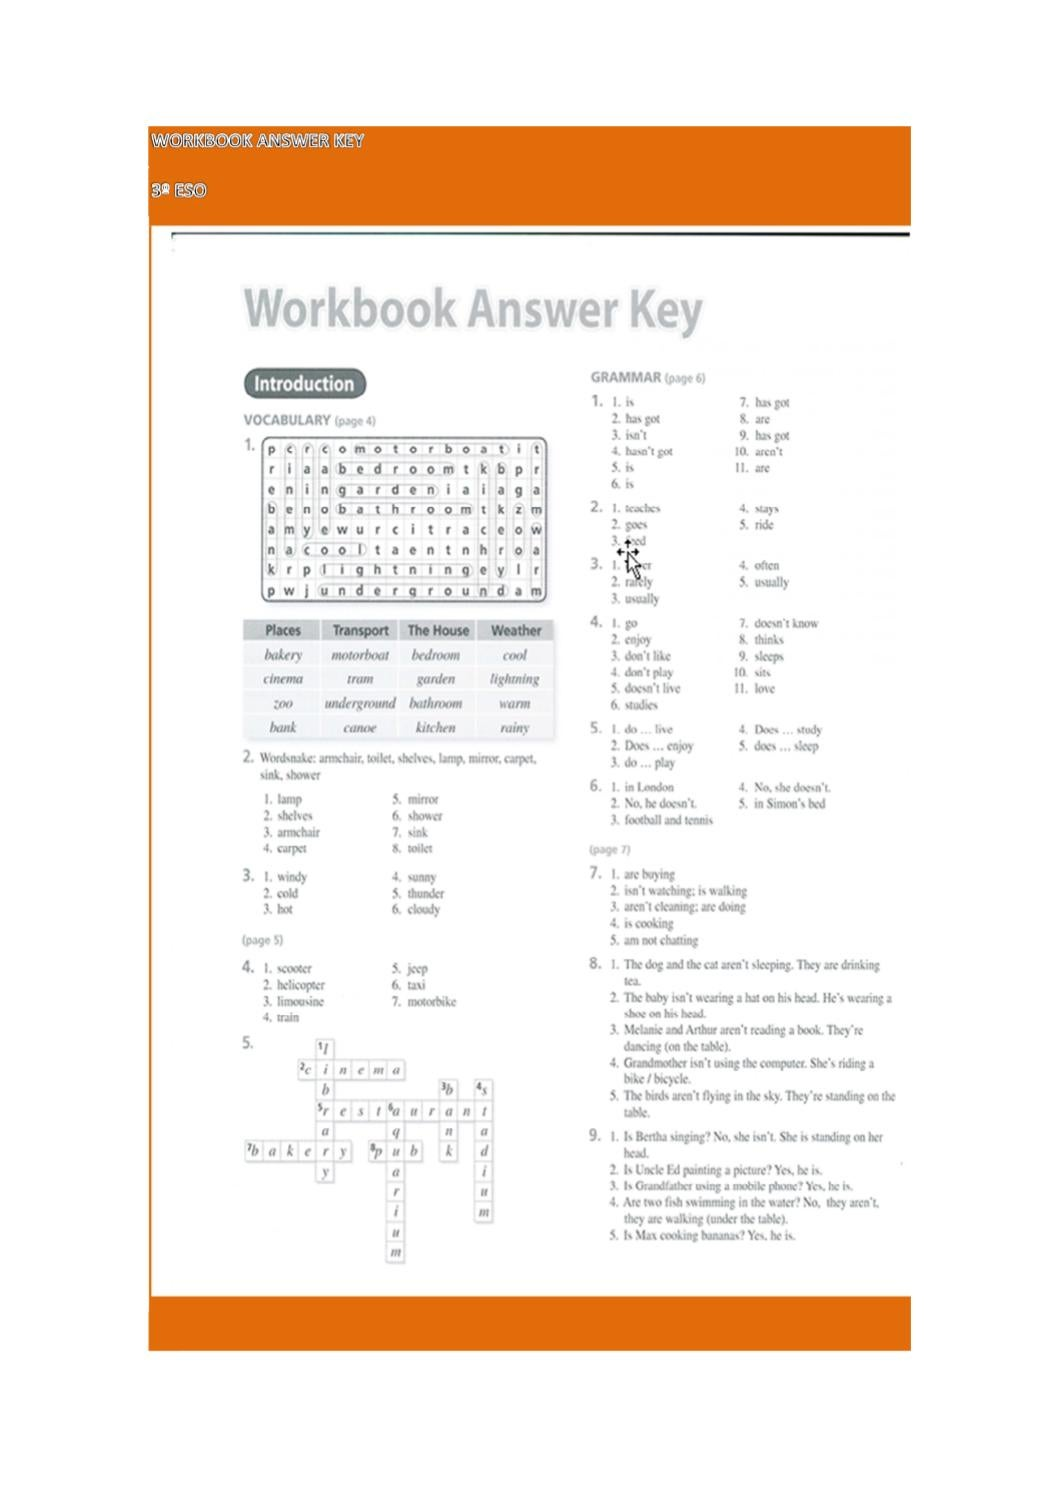 workbook answer key by isa valledor - Issuu